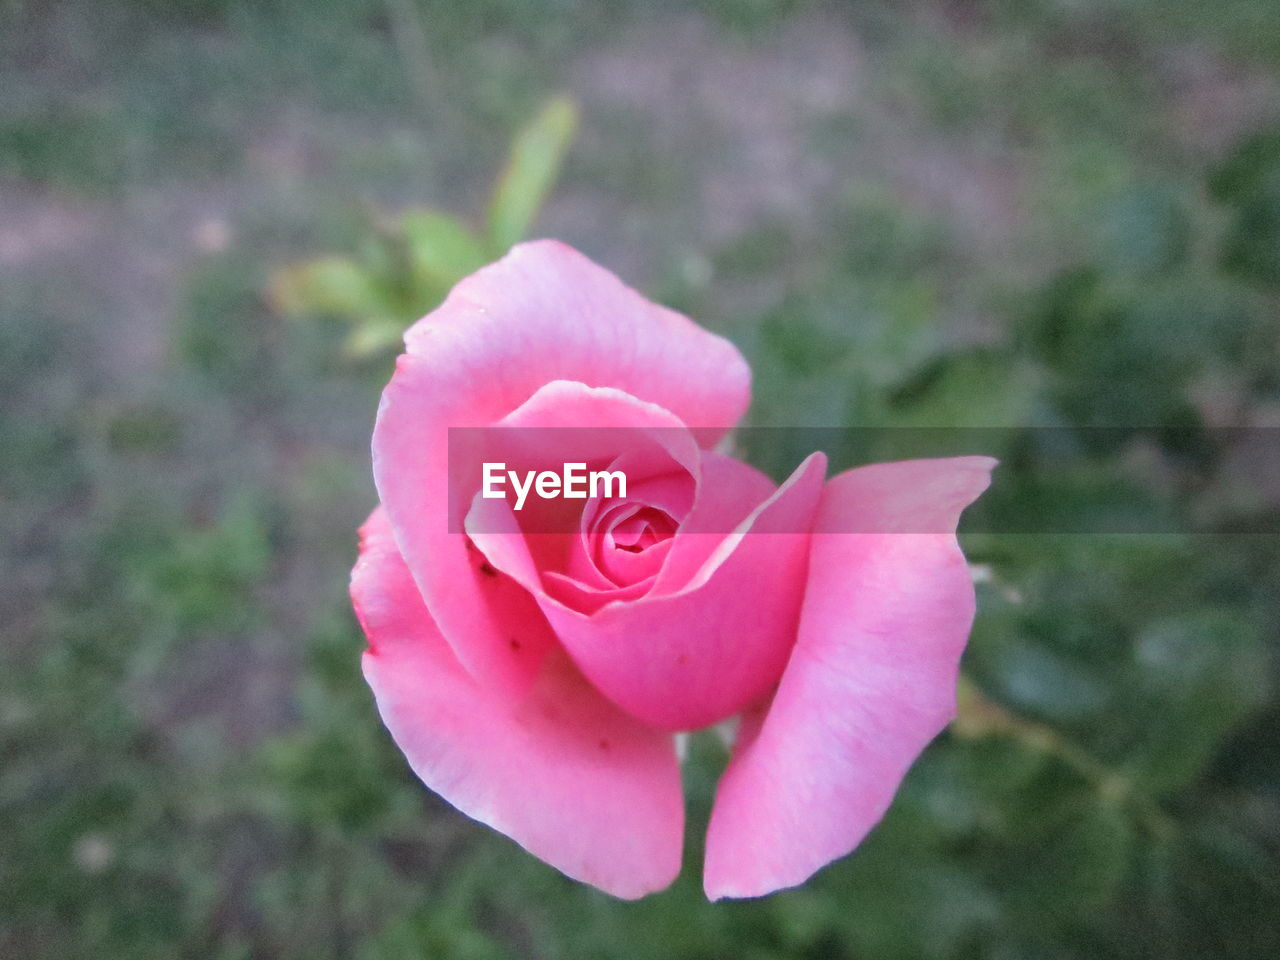 flower, petal, nature, beauty in nature, rose - flower, fragility, flower head, pink color, freshness, no people, plant, focus on foreground, close-up, growth, outdoors, blooming, day, rose petals